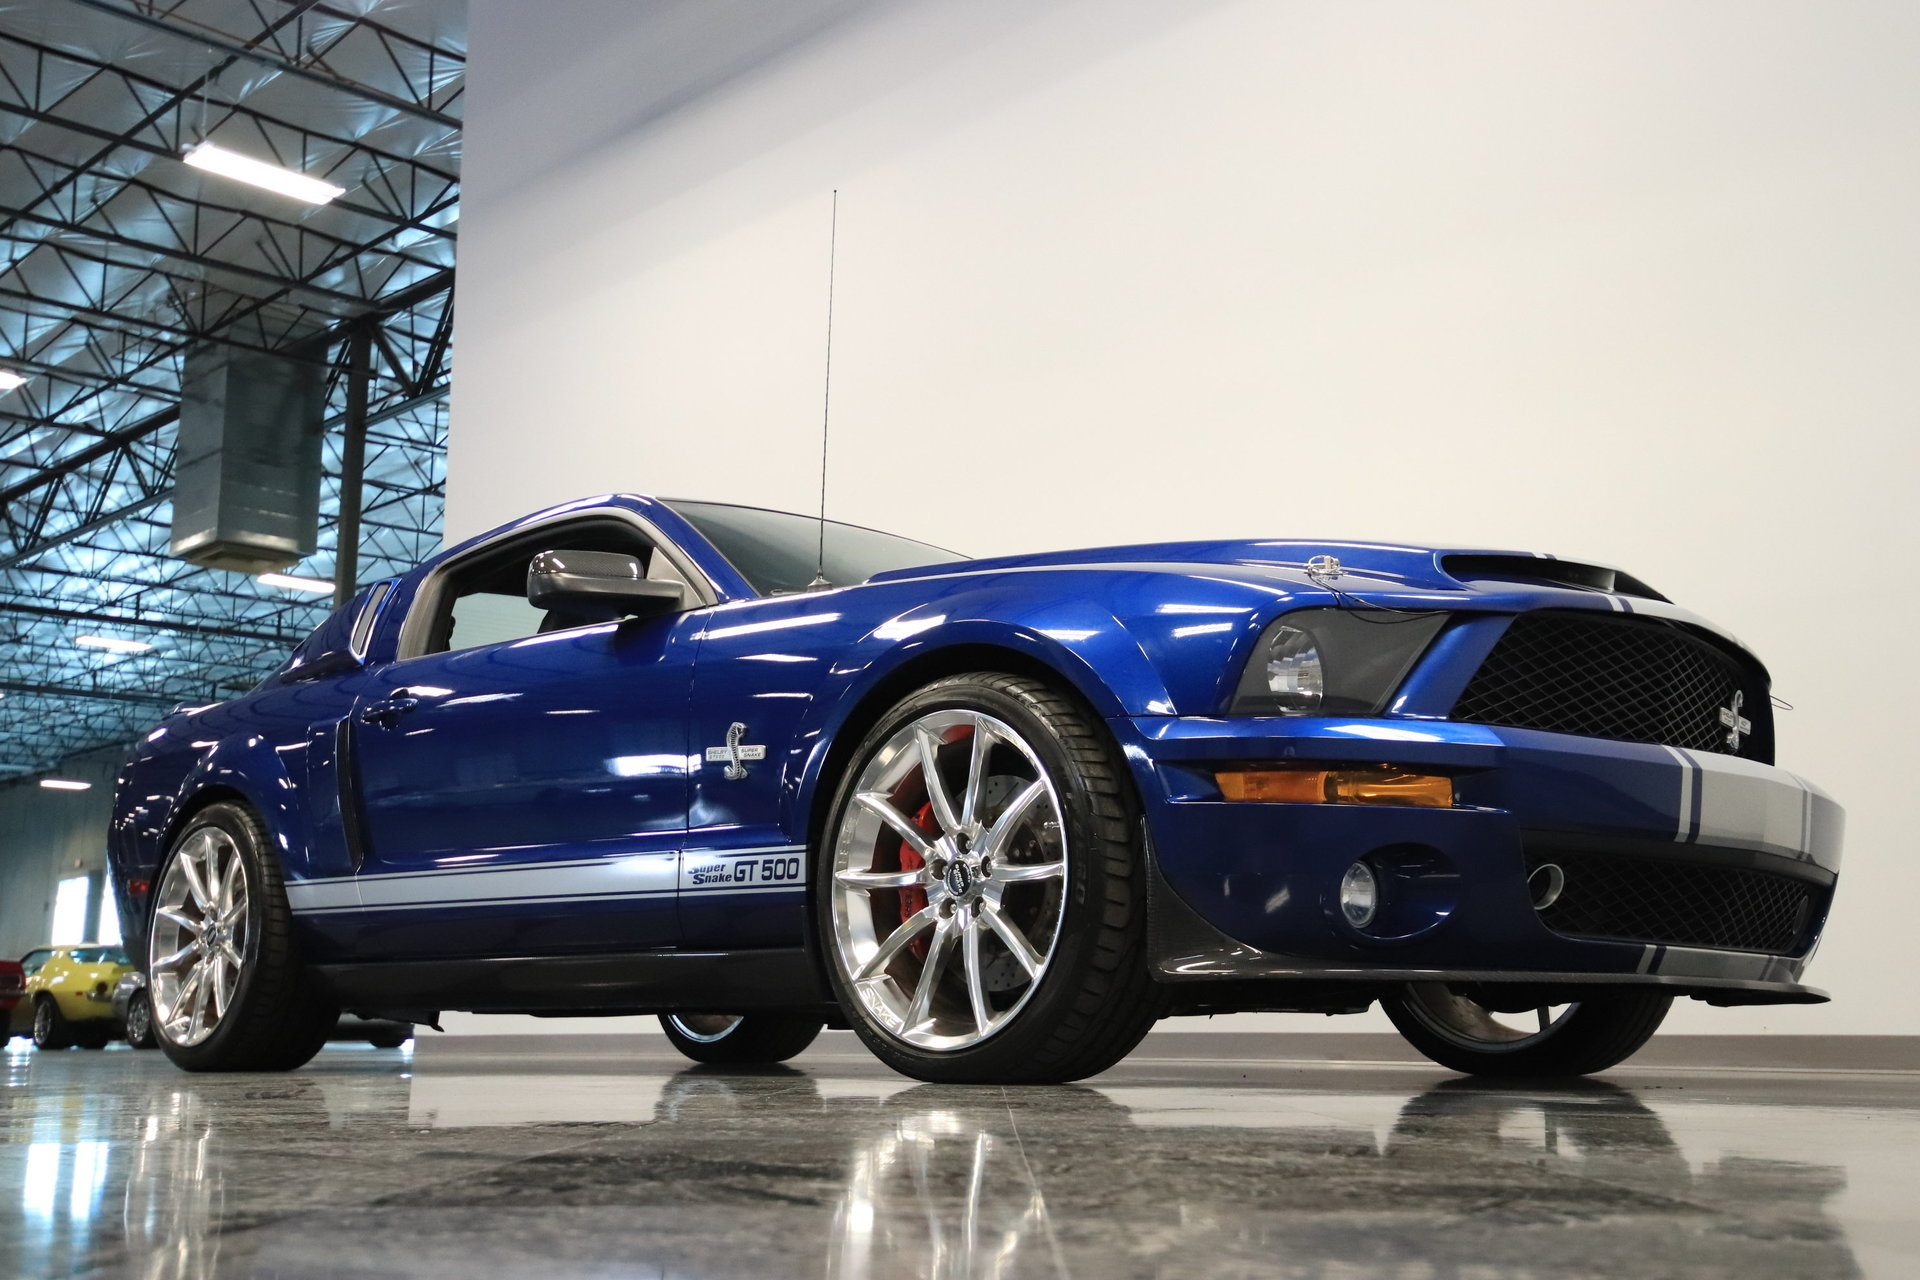 2007 Ford Mustang Shelby GT500 Super Snake for sale #74000 ...